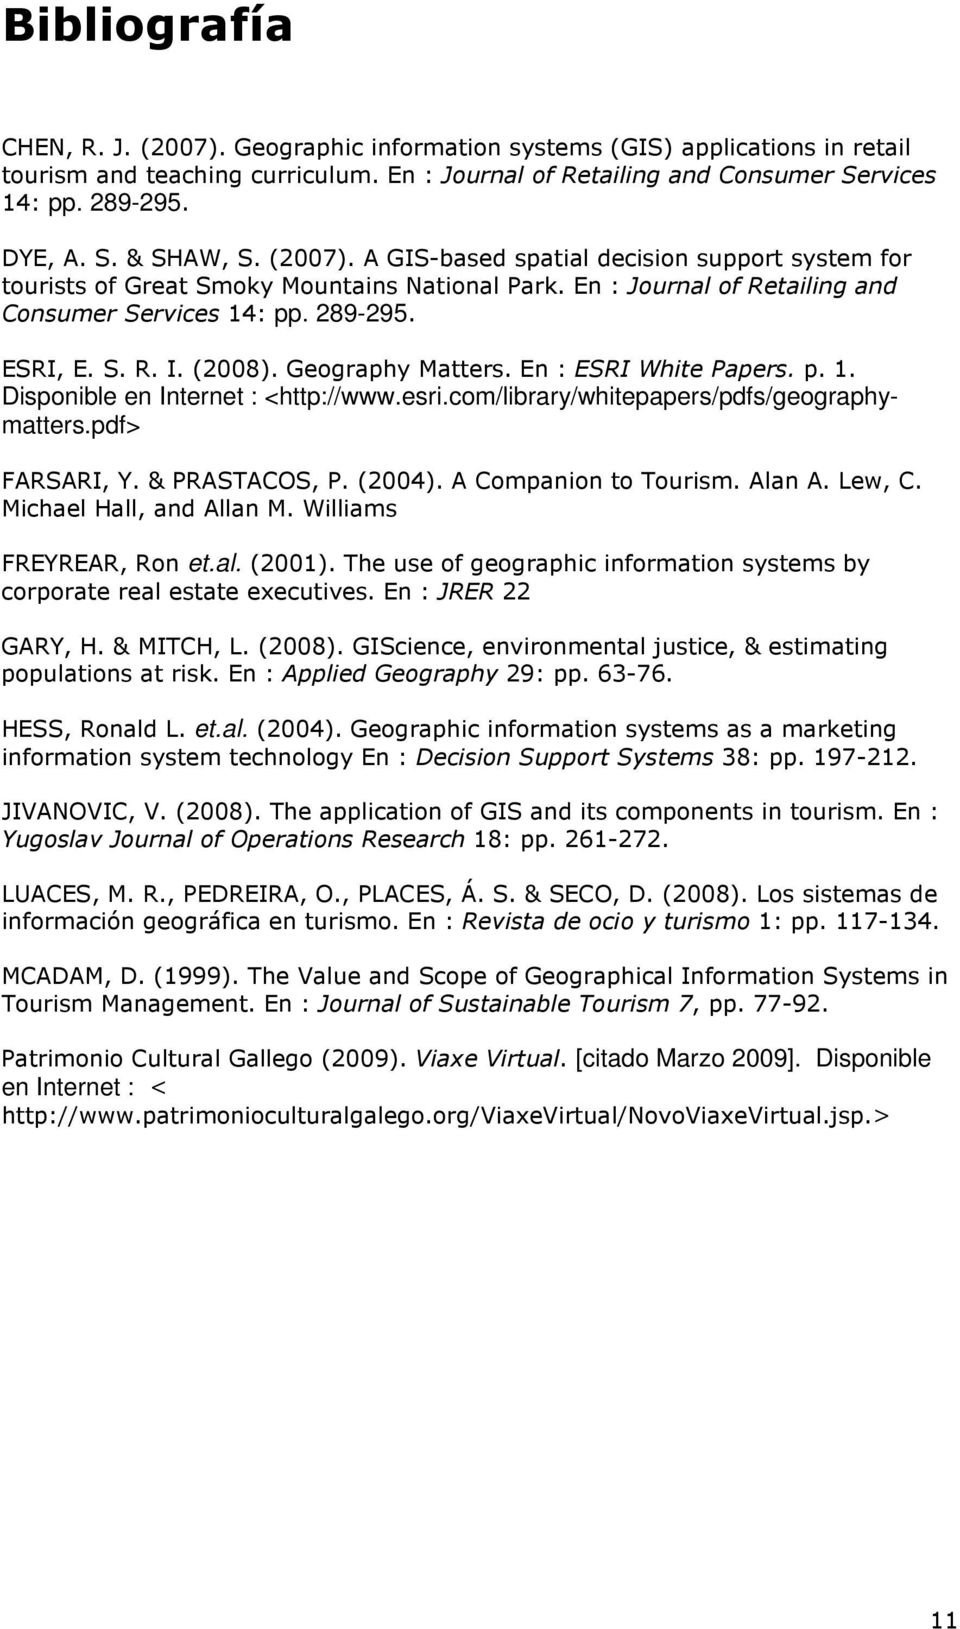 (2008). Geography Matters. En : ESRI White Papers. p. 1. Disponible en Internet : <http://www.esri.com/library/whitepapers/pdfs/geographymatters.pdf> FARSARI, Y. & PRASTACOS, P. (2004).